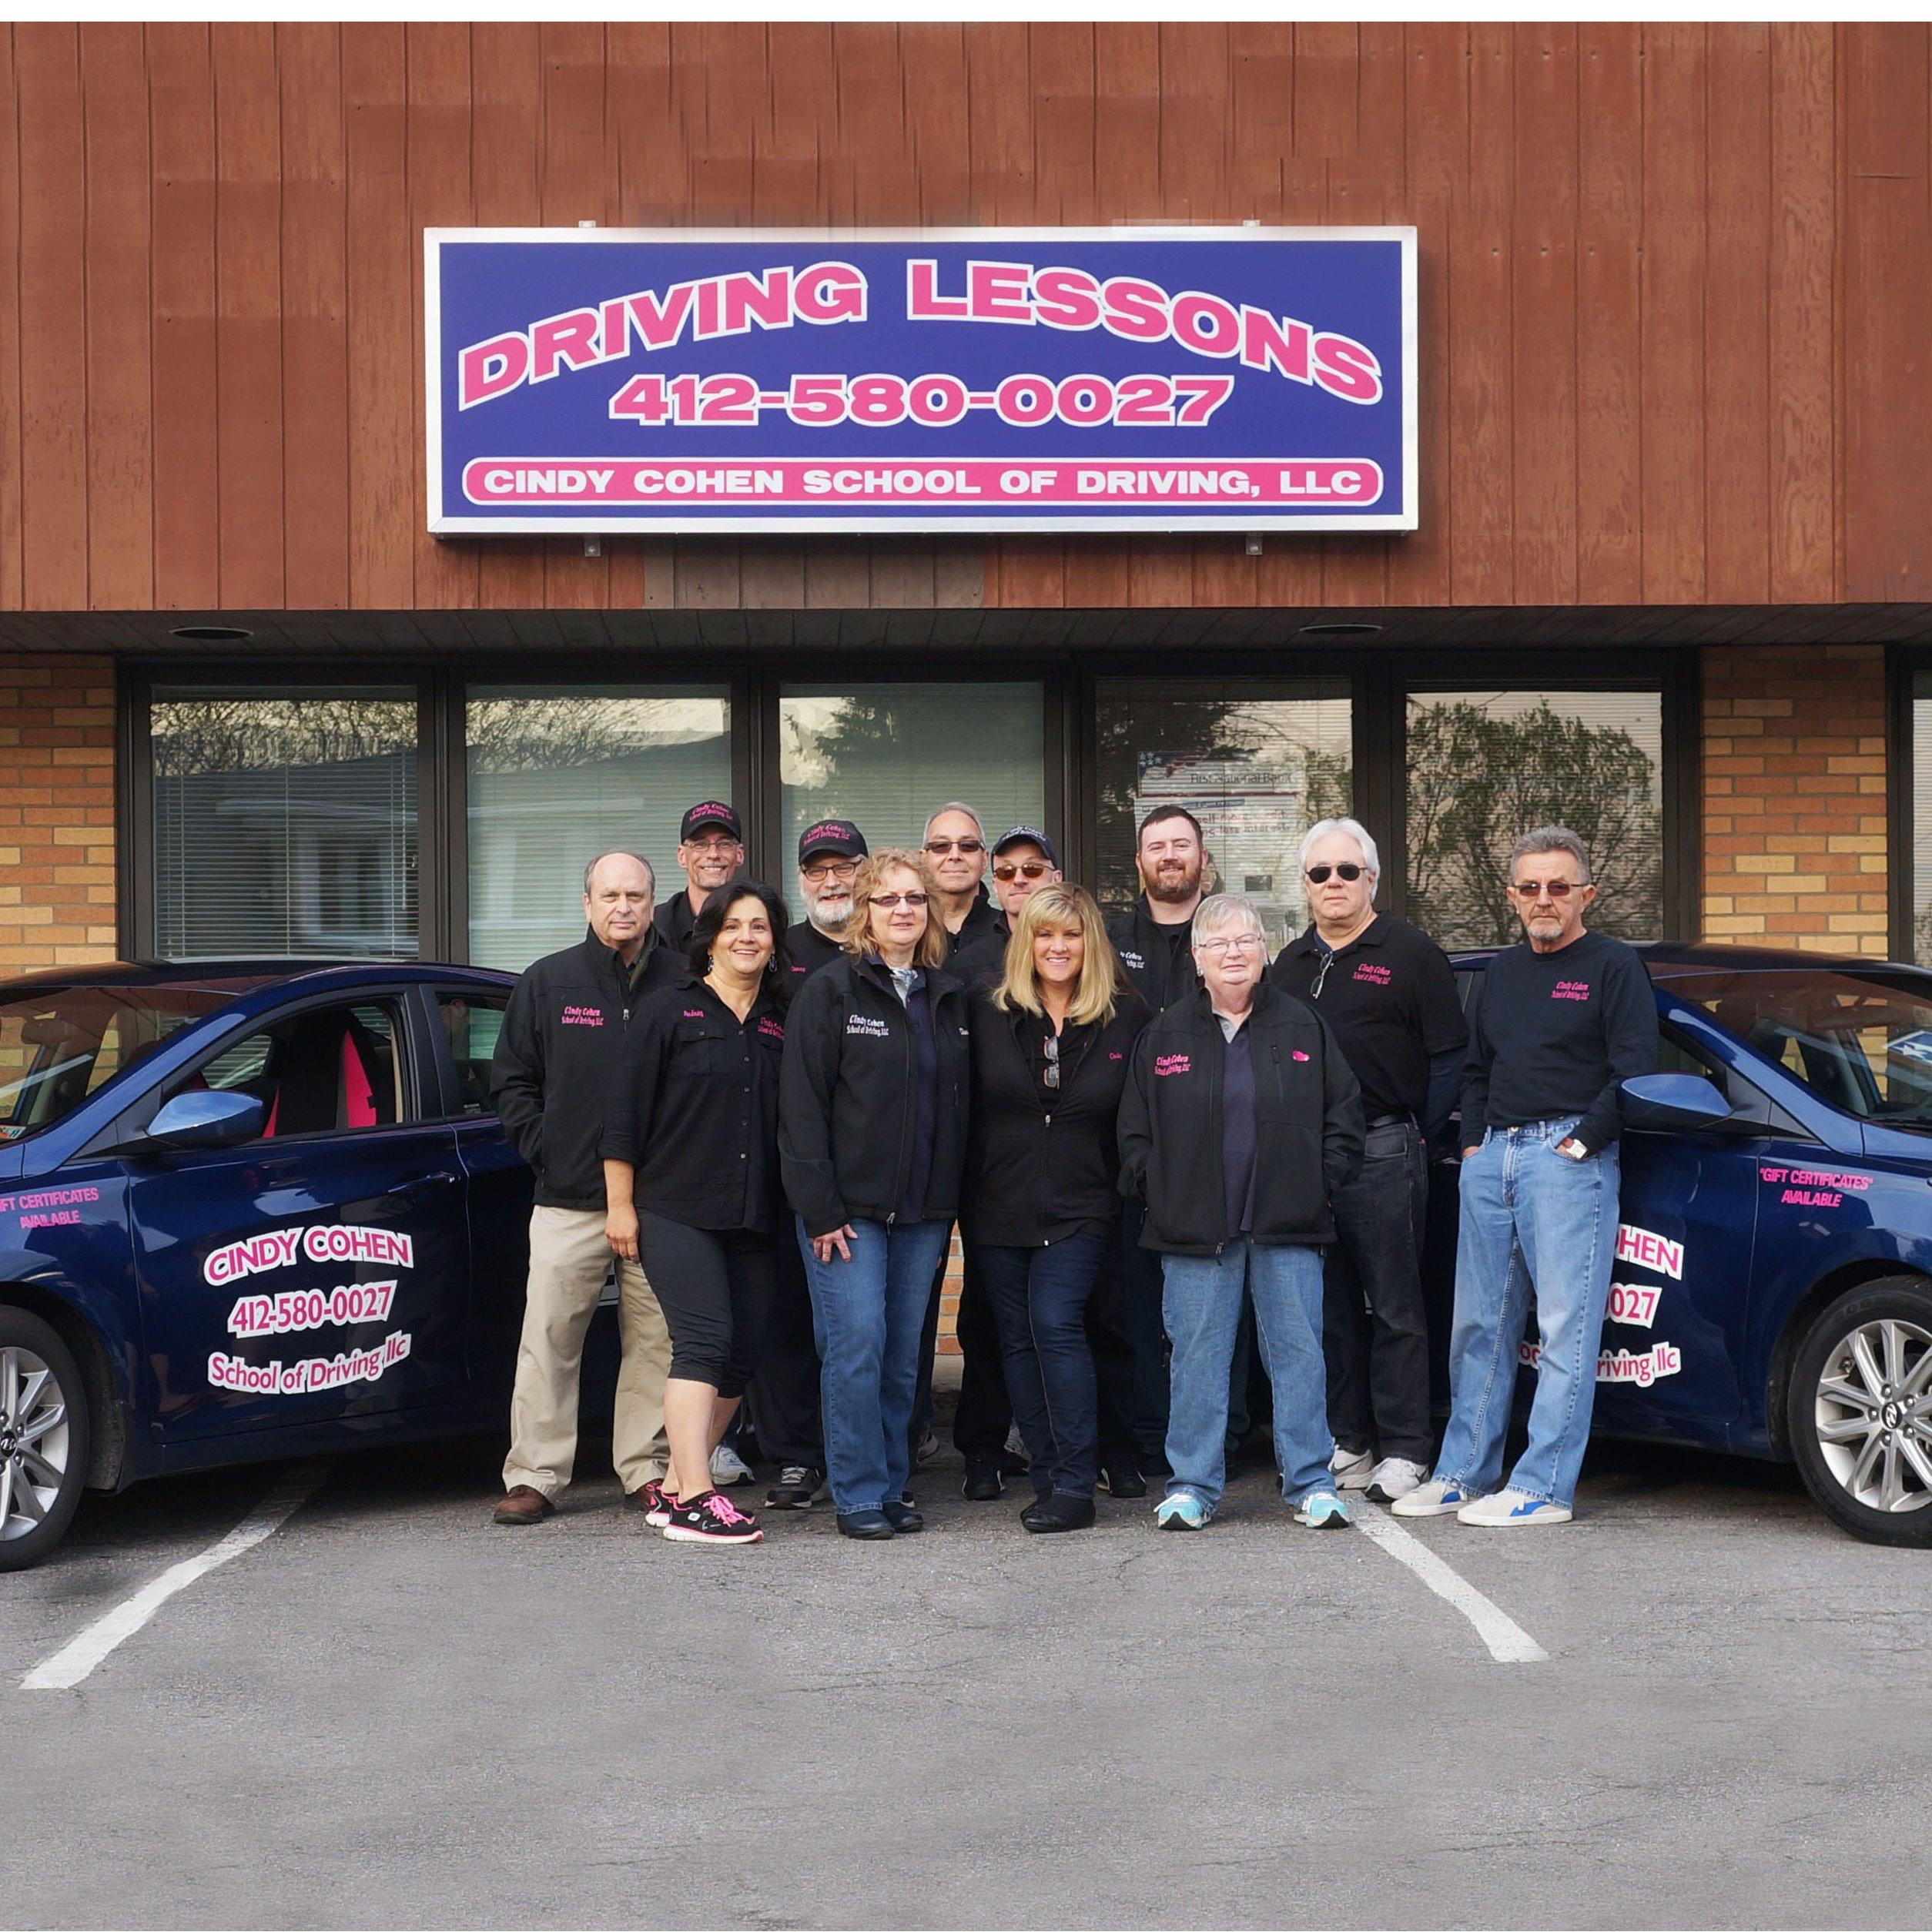 image of the Cindy Cohen School of Driving